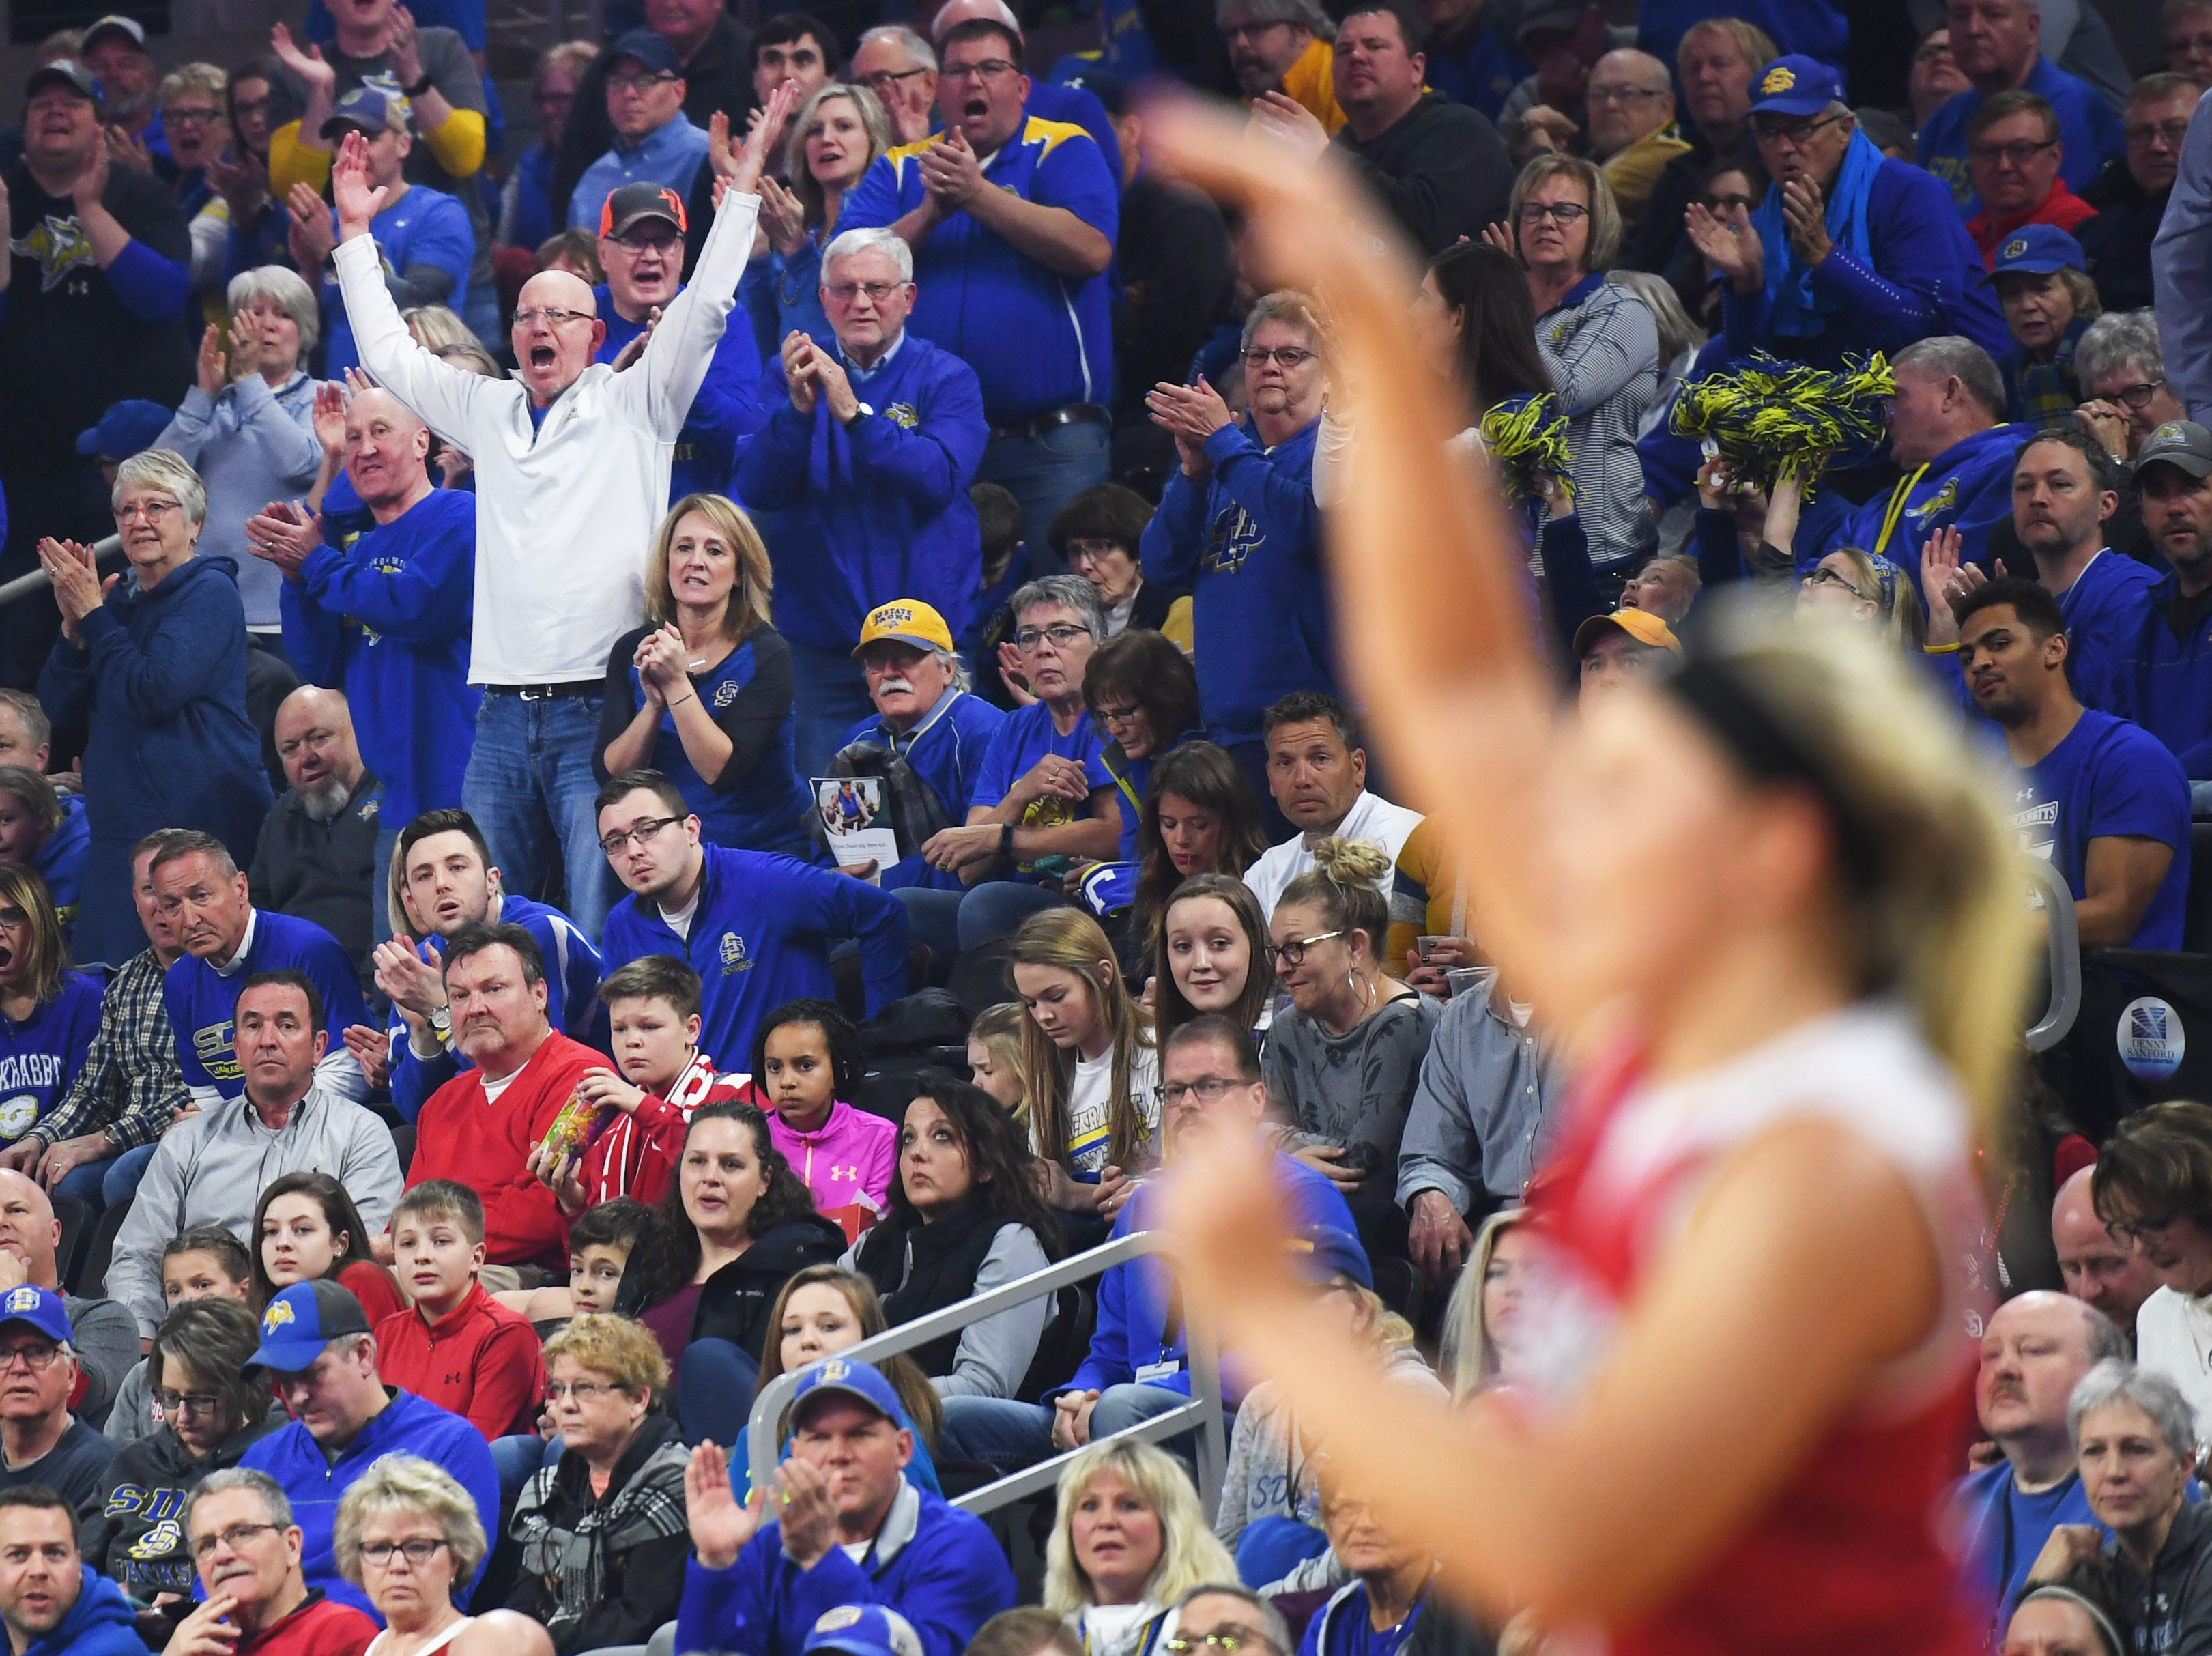 SDSU fans react during the game against USD Tuesday, March 12, in the Summit League women's championship at the Denny Sanford Premier Center in Sioux Falls.